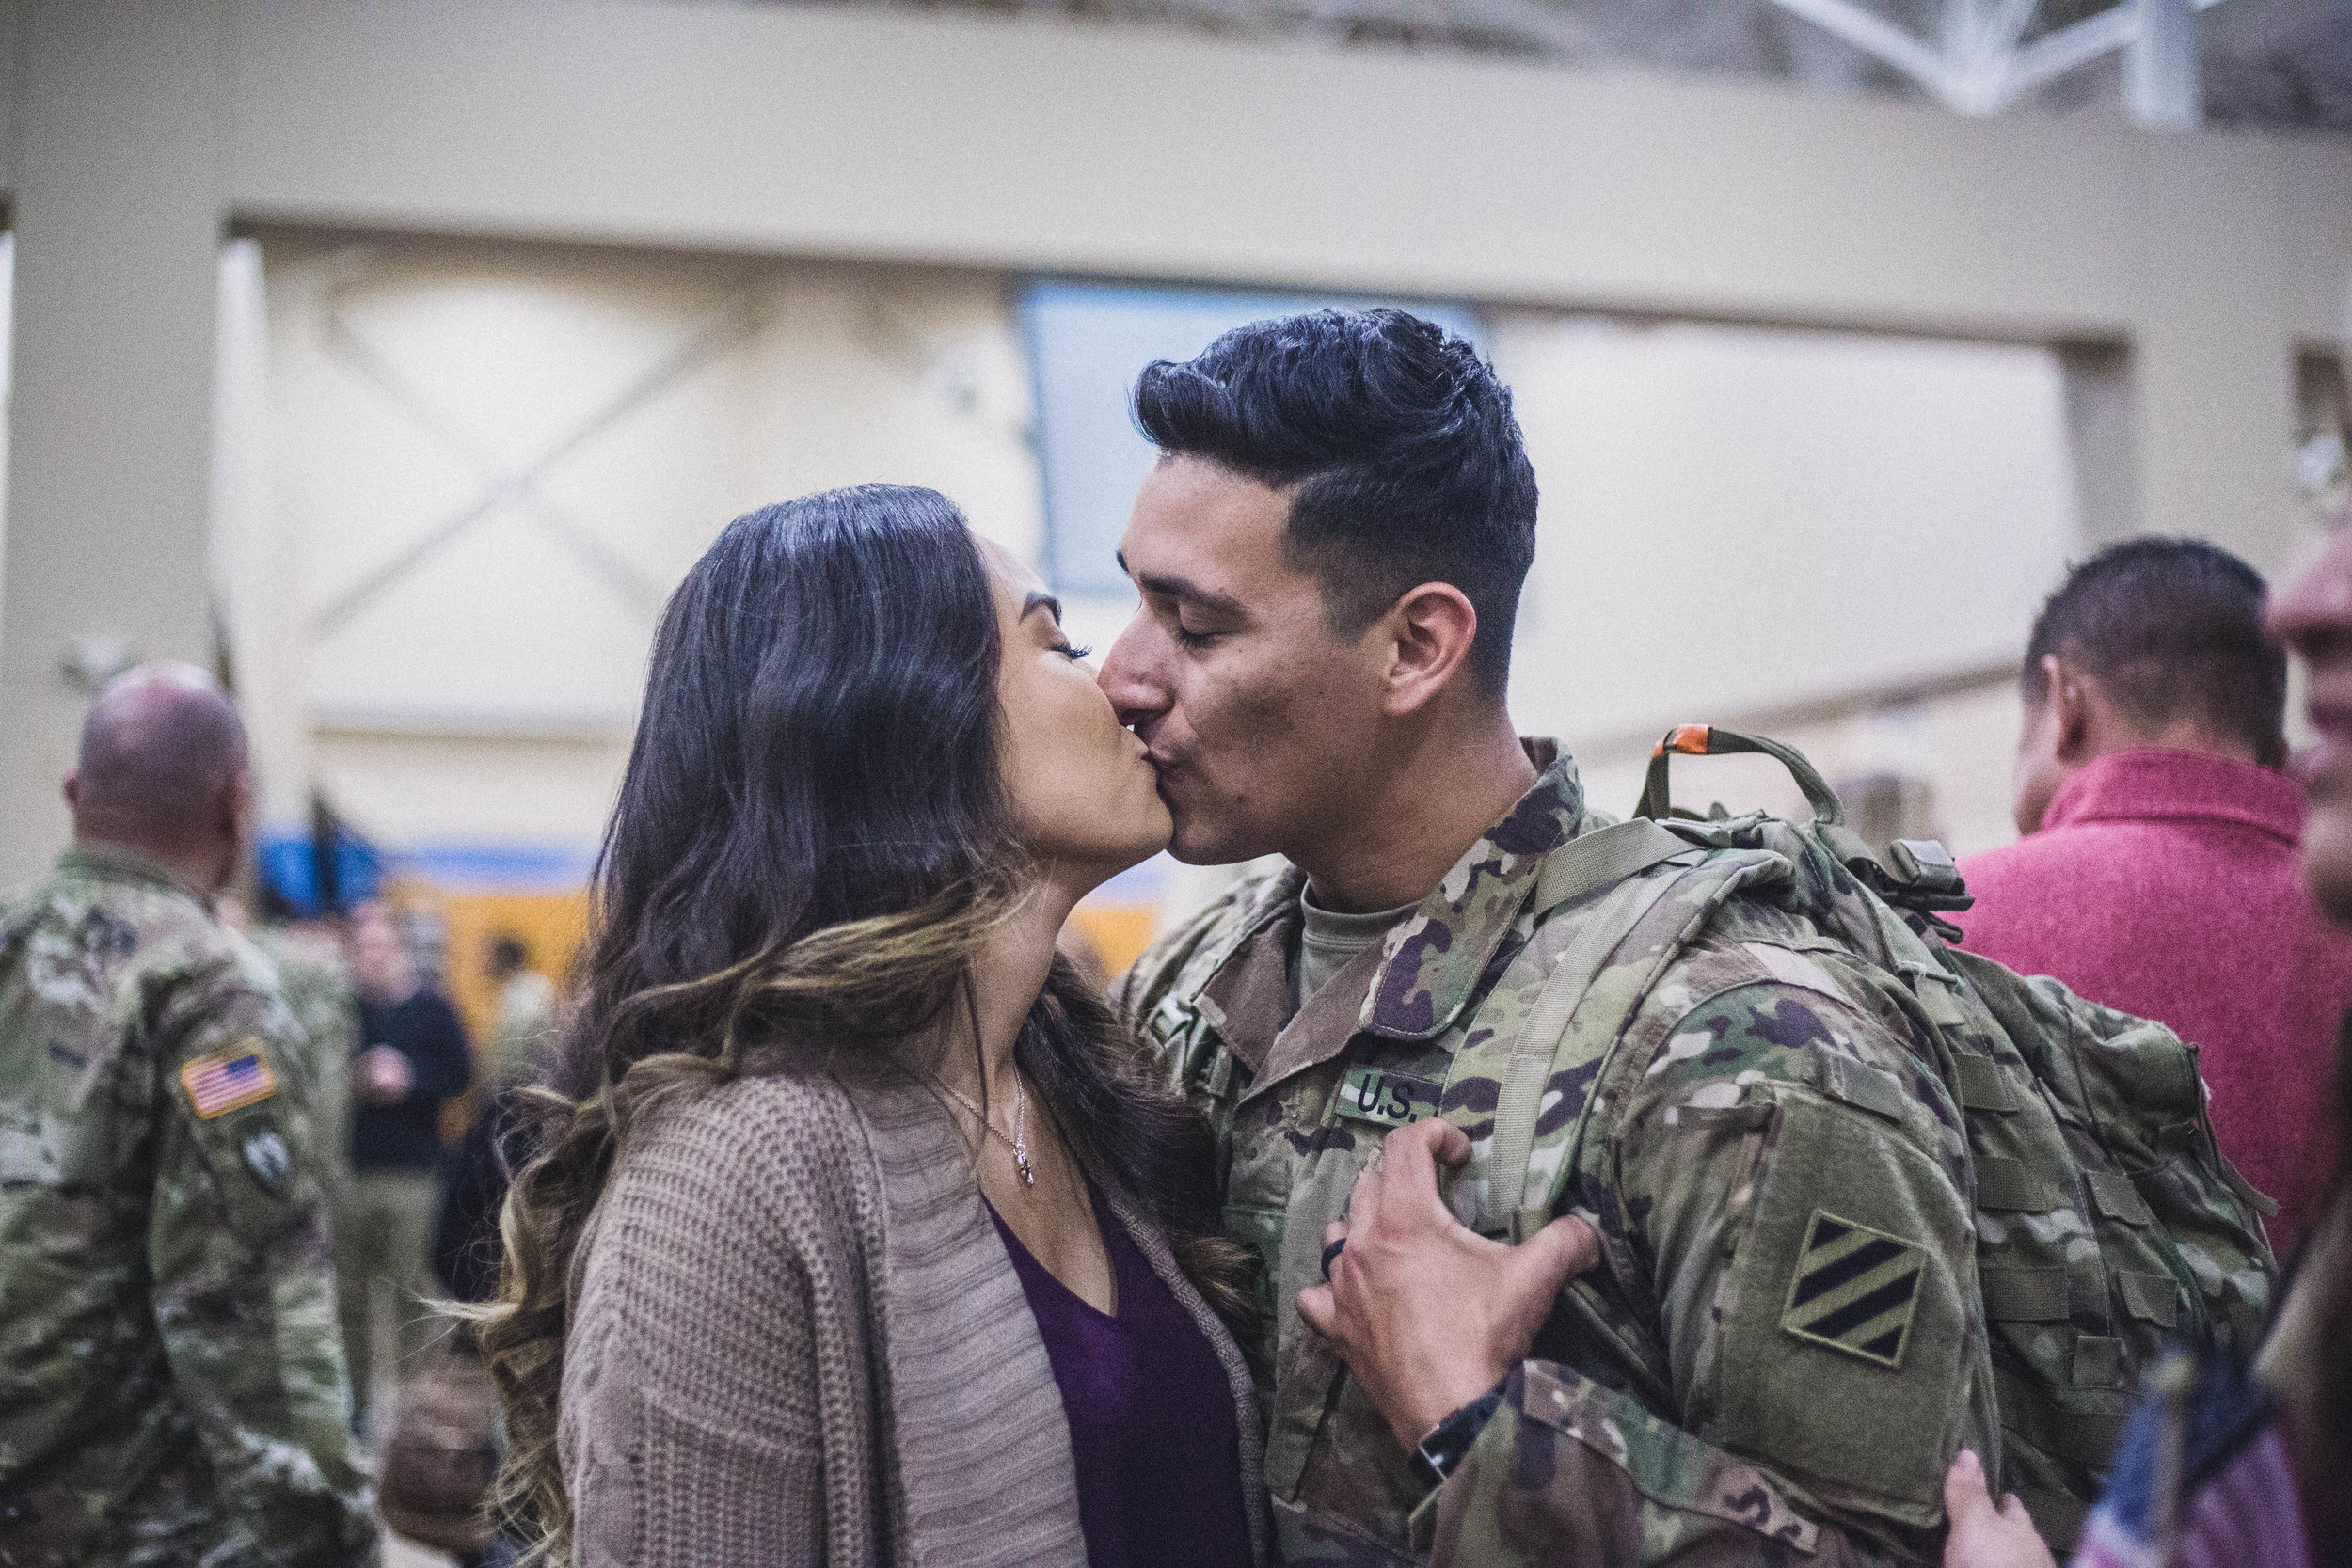 Husband and wife kiss for the first time after he returns home from nine months in Afghanistan